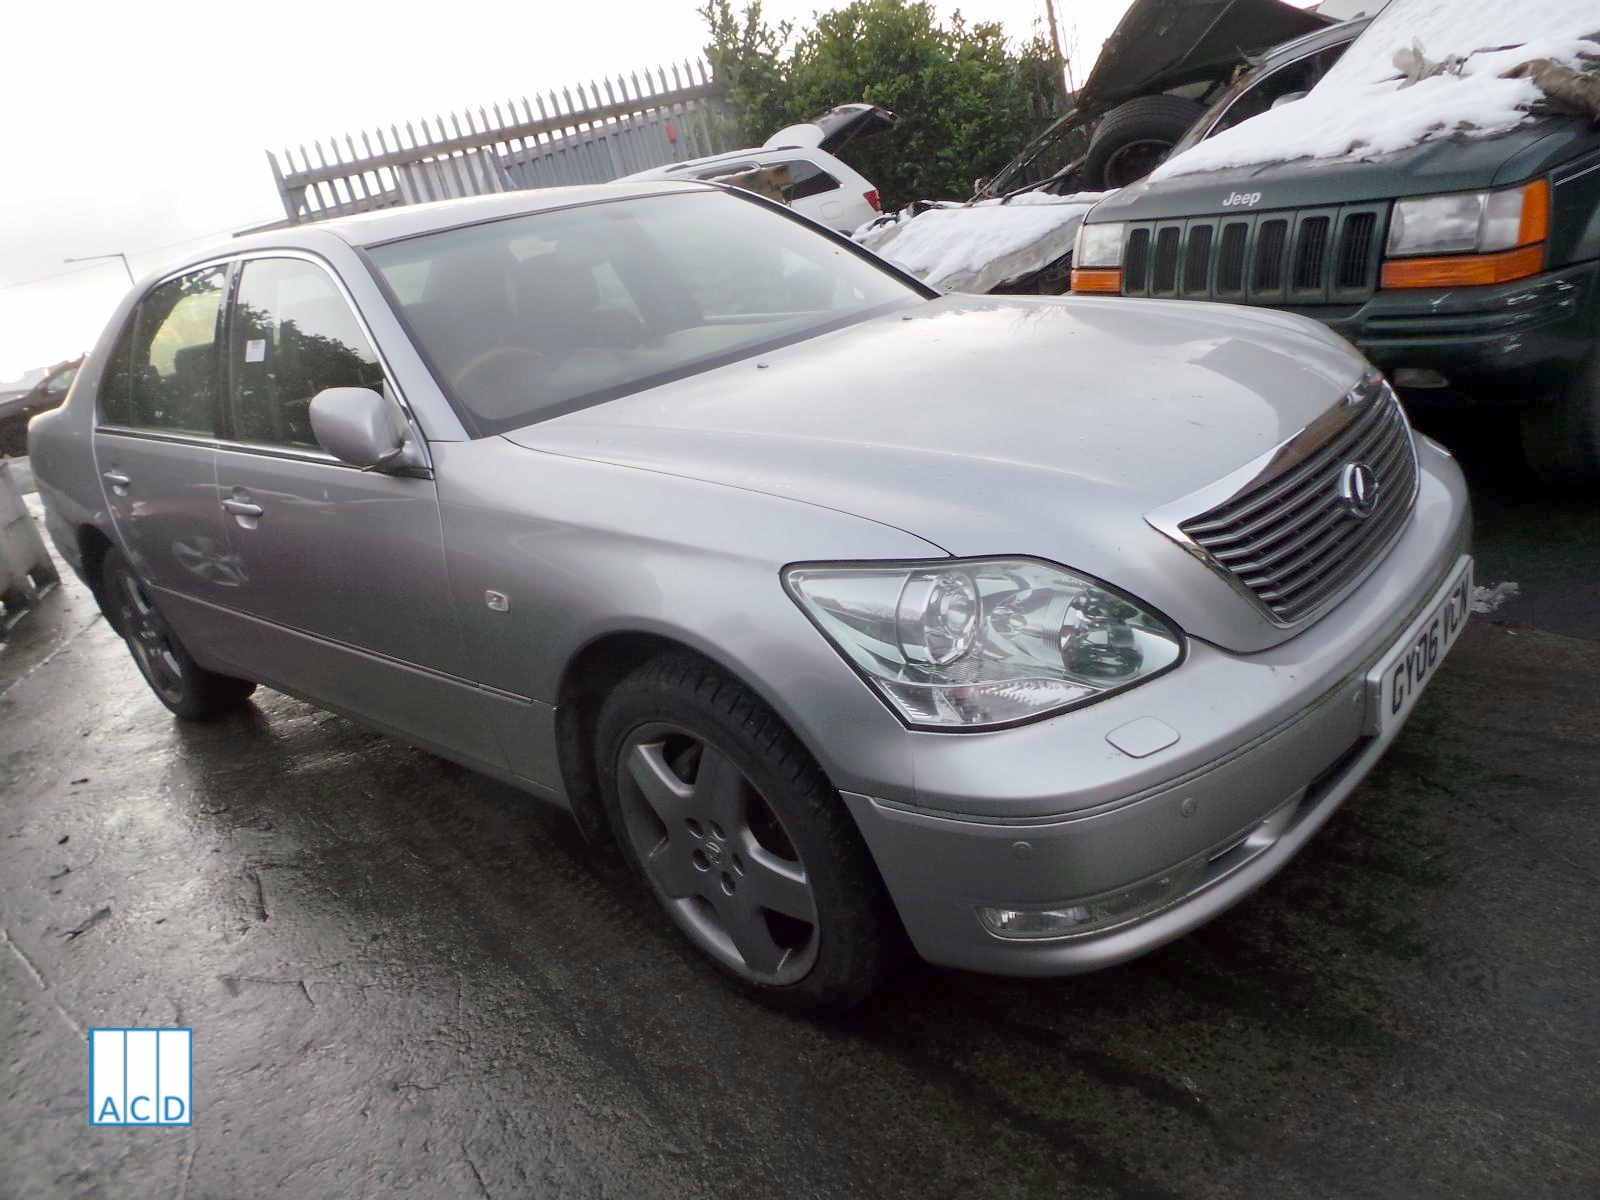 Lexus LS430 4.3L Petrol 5-Speed Automatic 2006 #3288 01